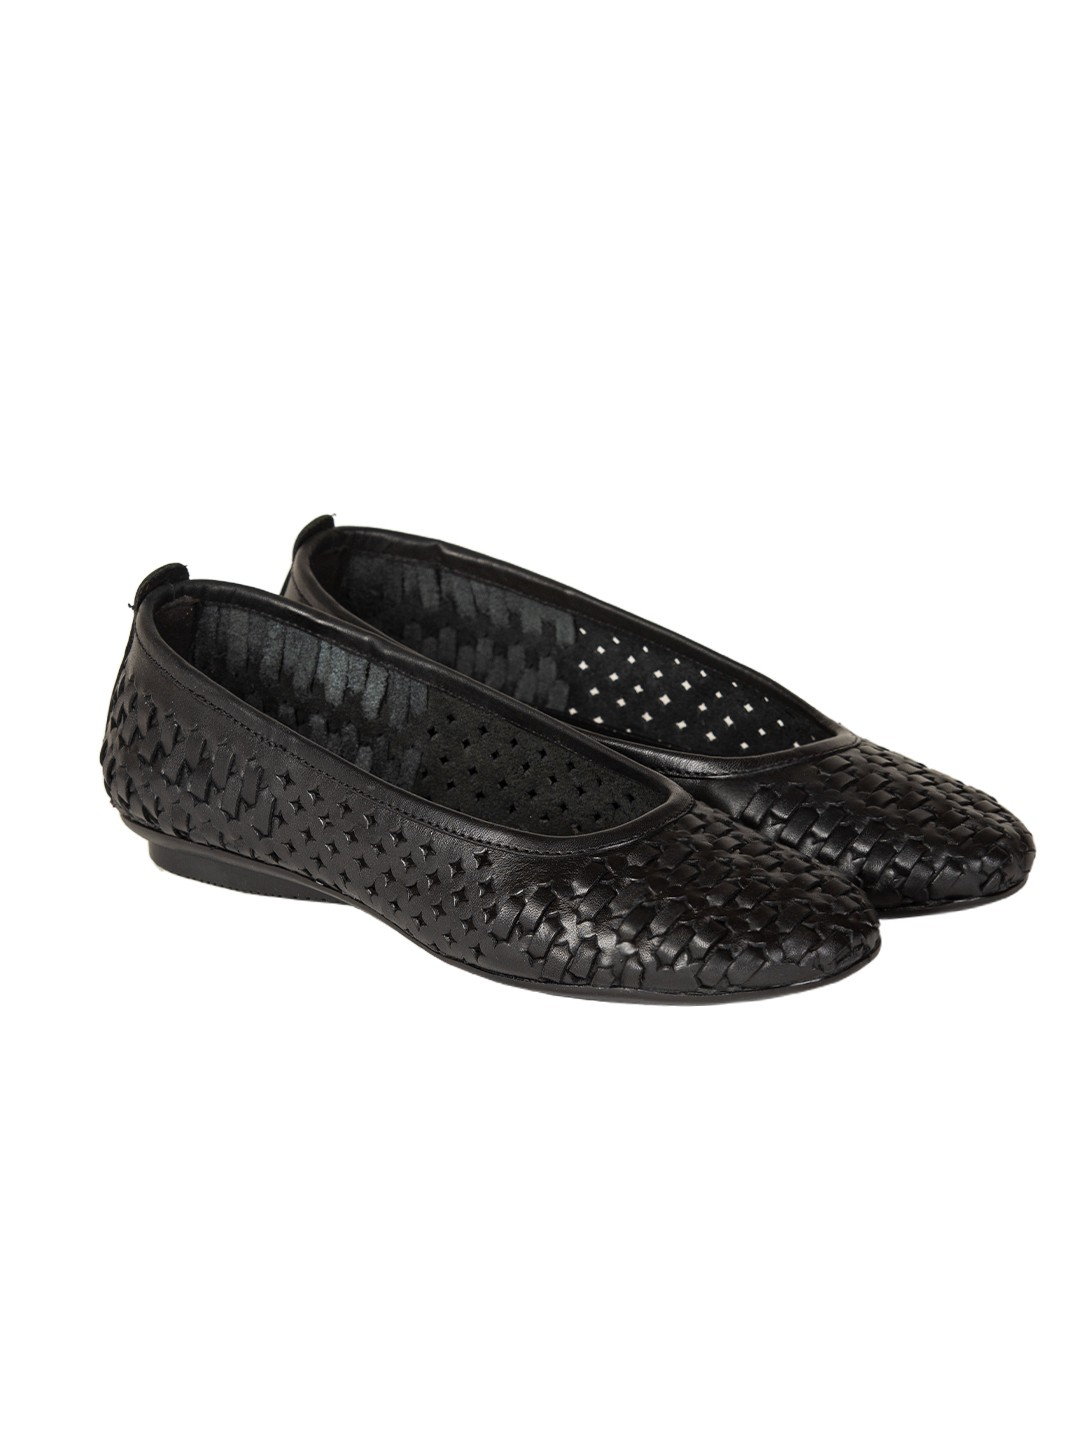 Buy VON WELLX GERMANY COMFORT DAZE CASUAL BLACK SHOES In Delhi